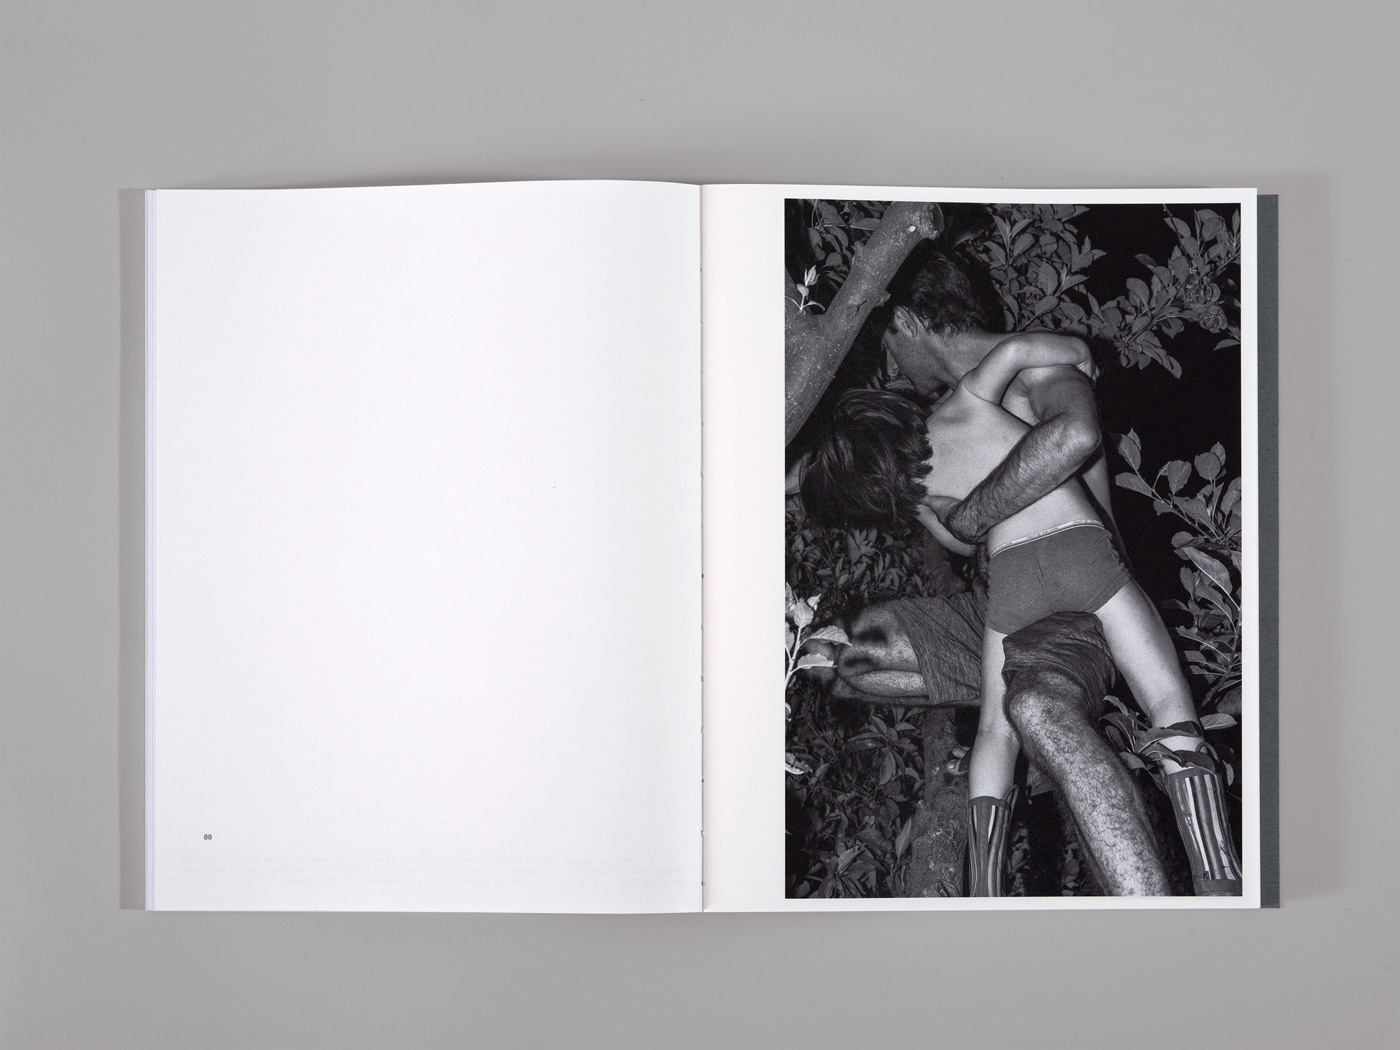 12 collide24 samepaper - The book Still Life, published by Same Paper and designed by Han Gao, invites thirteen photographers to reflect on the medium in times of the pandemic